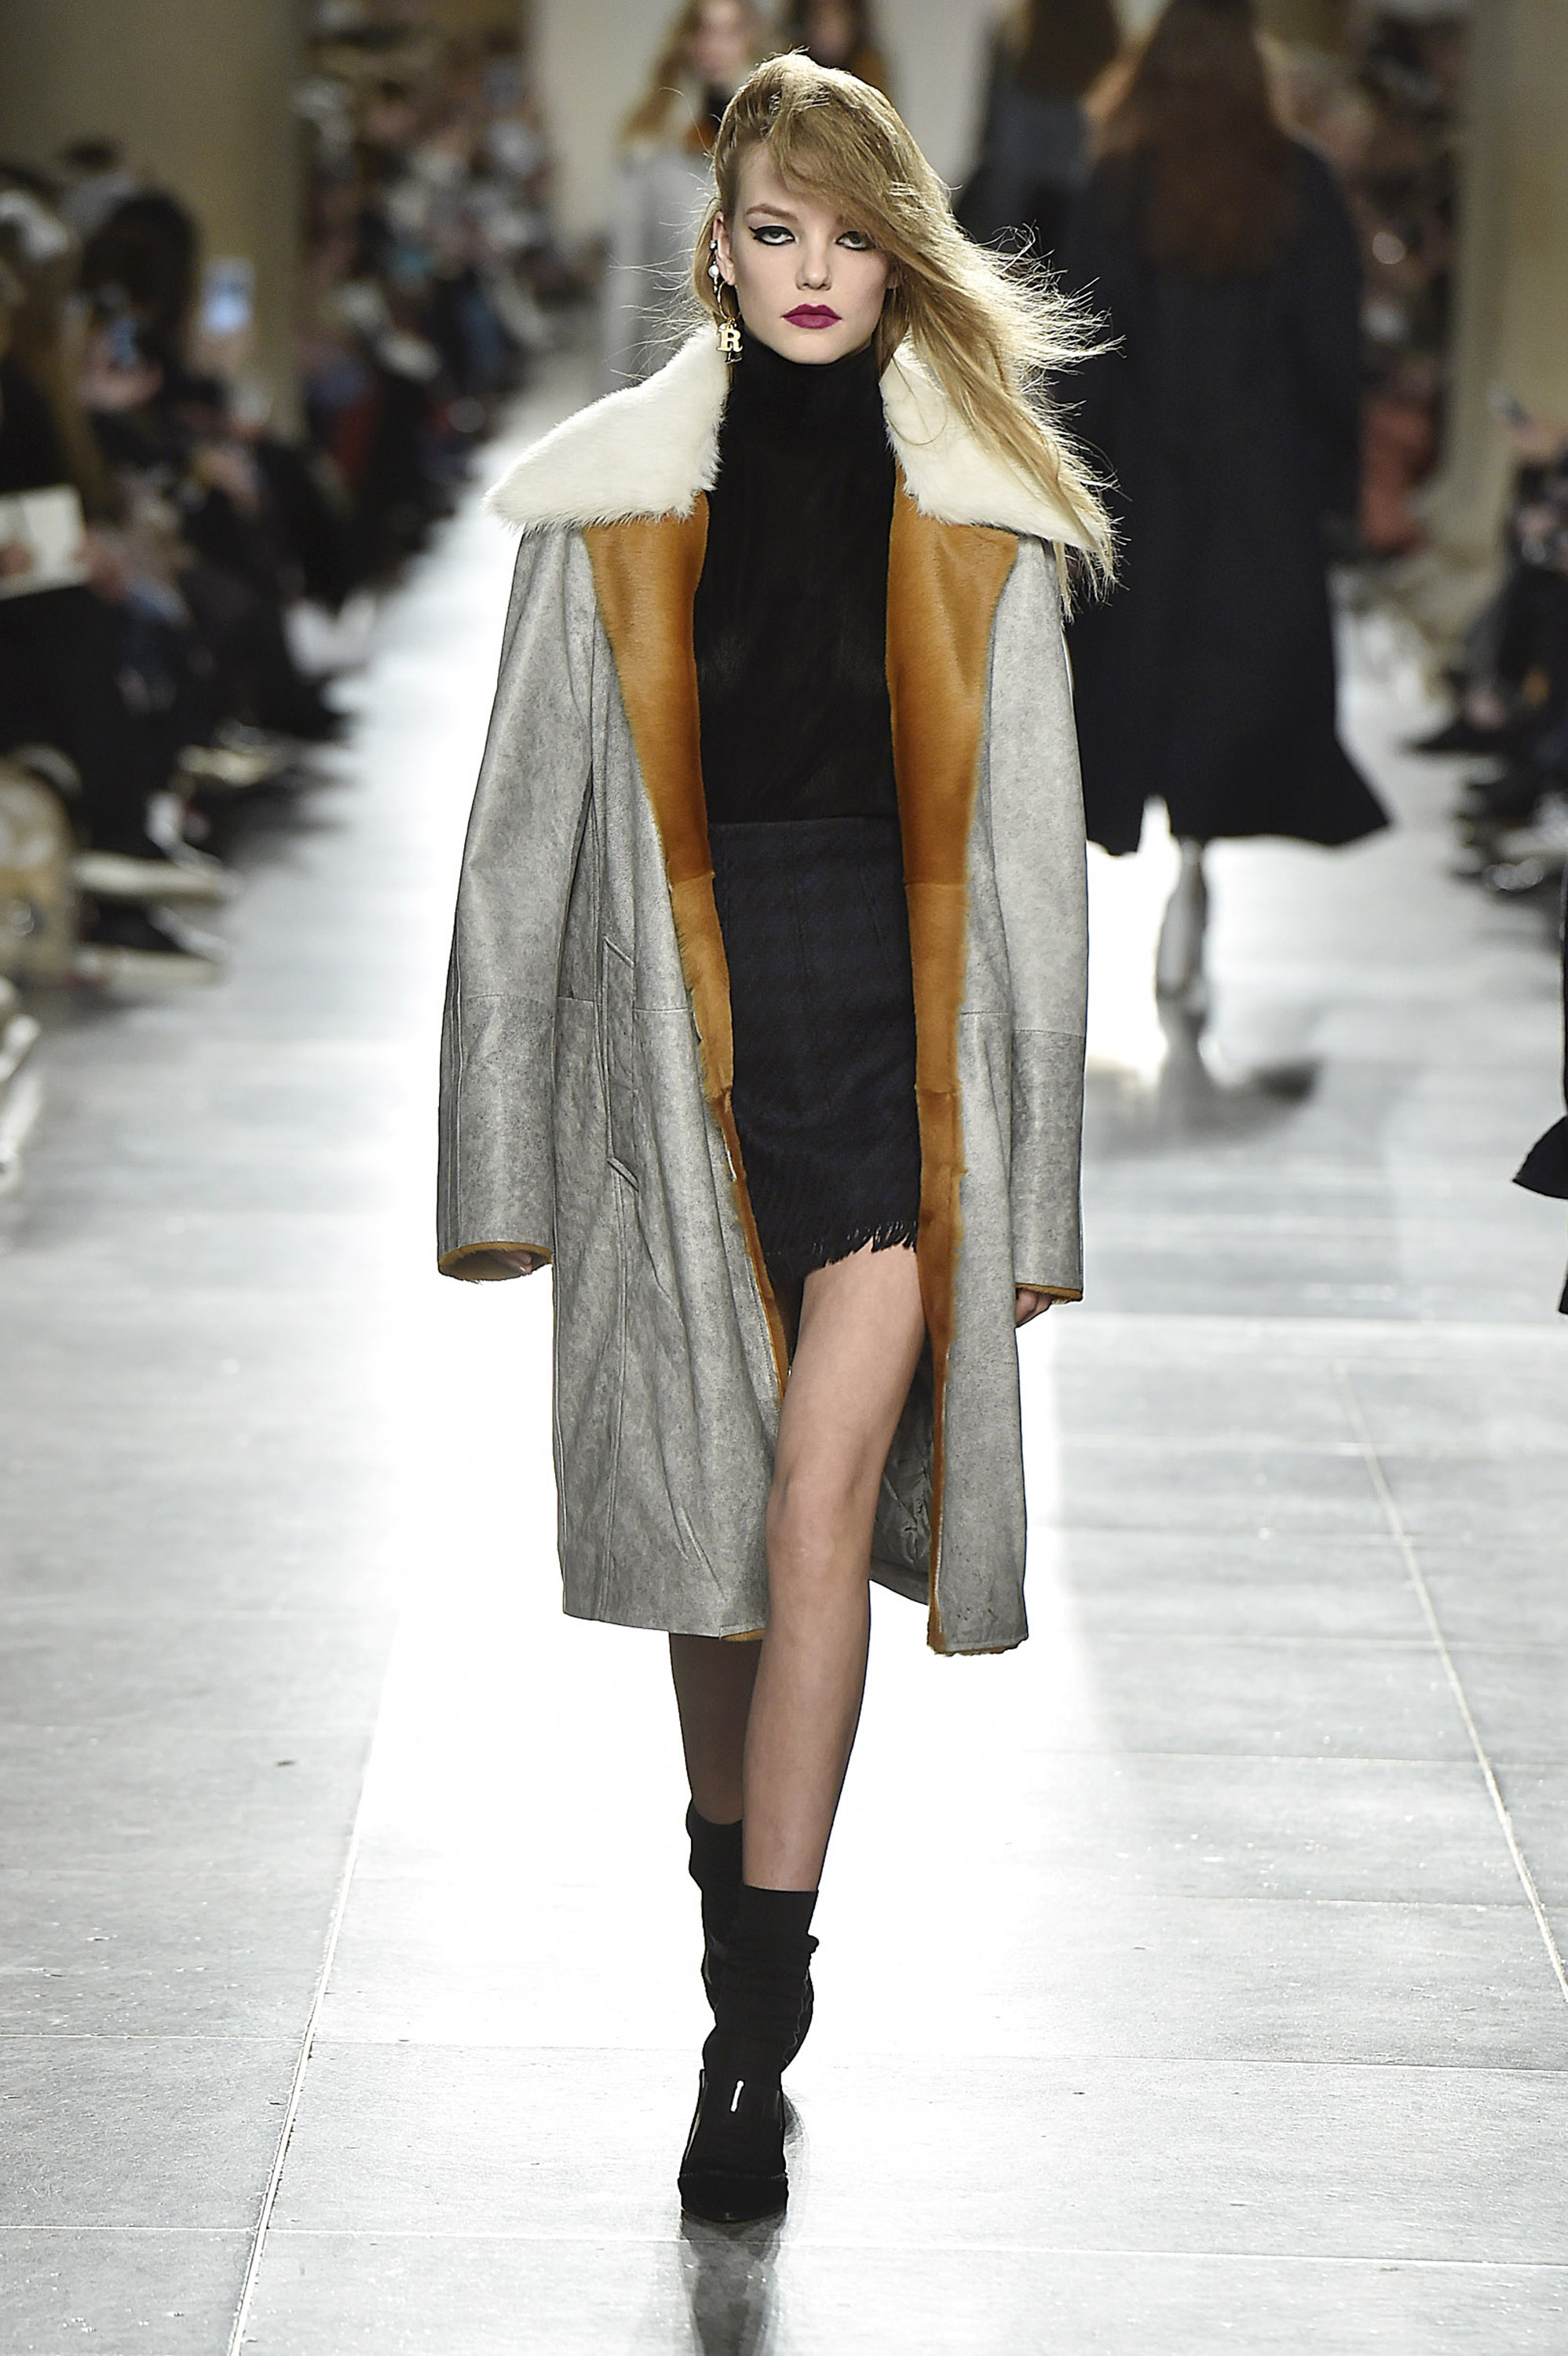 Unique Fall Winter 2016London Fashion Week Copyright Catwalking.com'One Time Only' PublicationEditorial Use Only